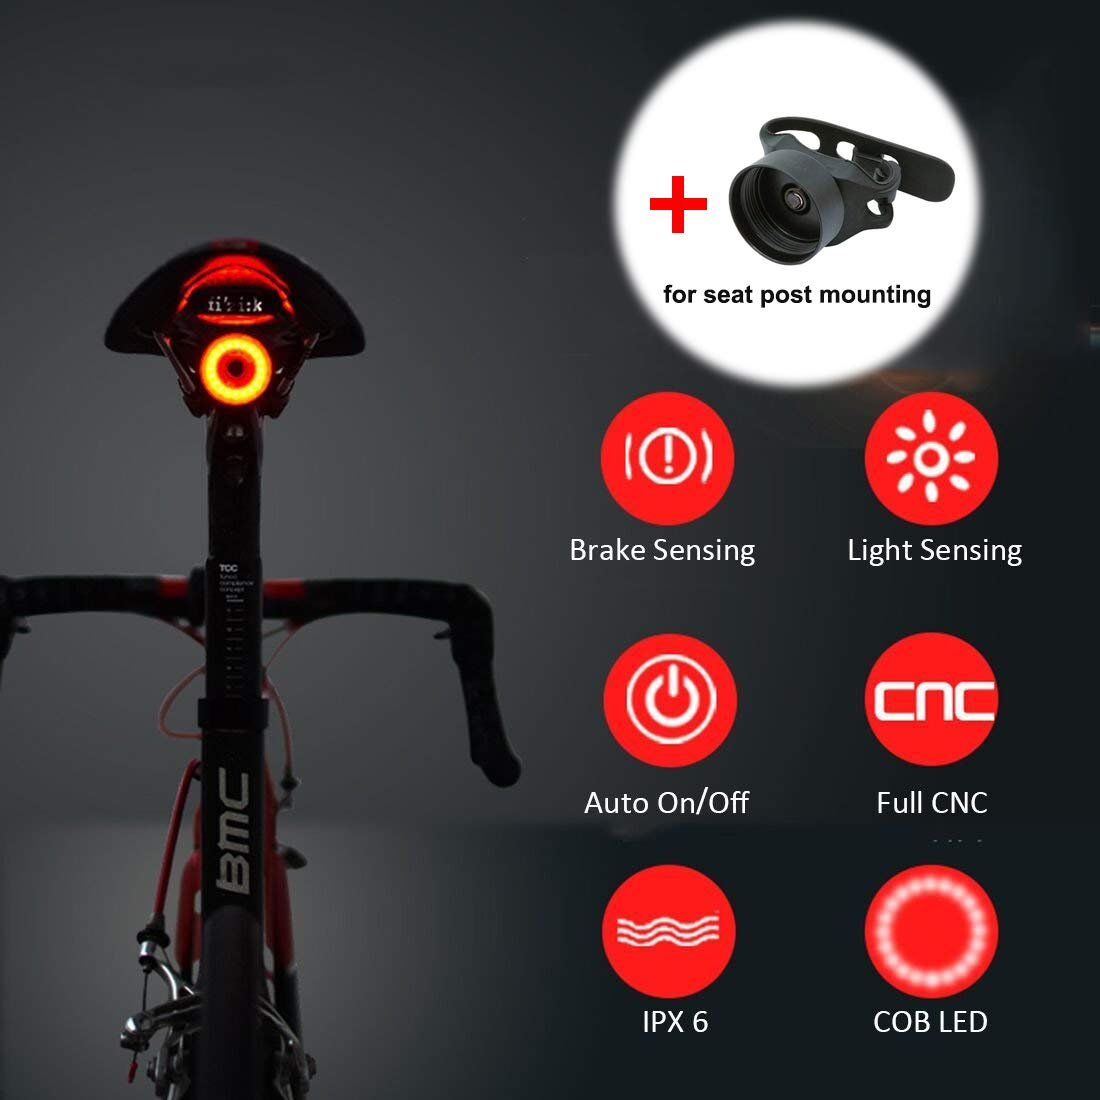 Bresuve USB Rechargeable Bicycle Tail Light, Super Bright Led Bike Bicycle Rear Light Automatic on Off, Brake Induction, IPX6 Waterproof, Red high-Intensity LED Bicycle Light